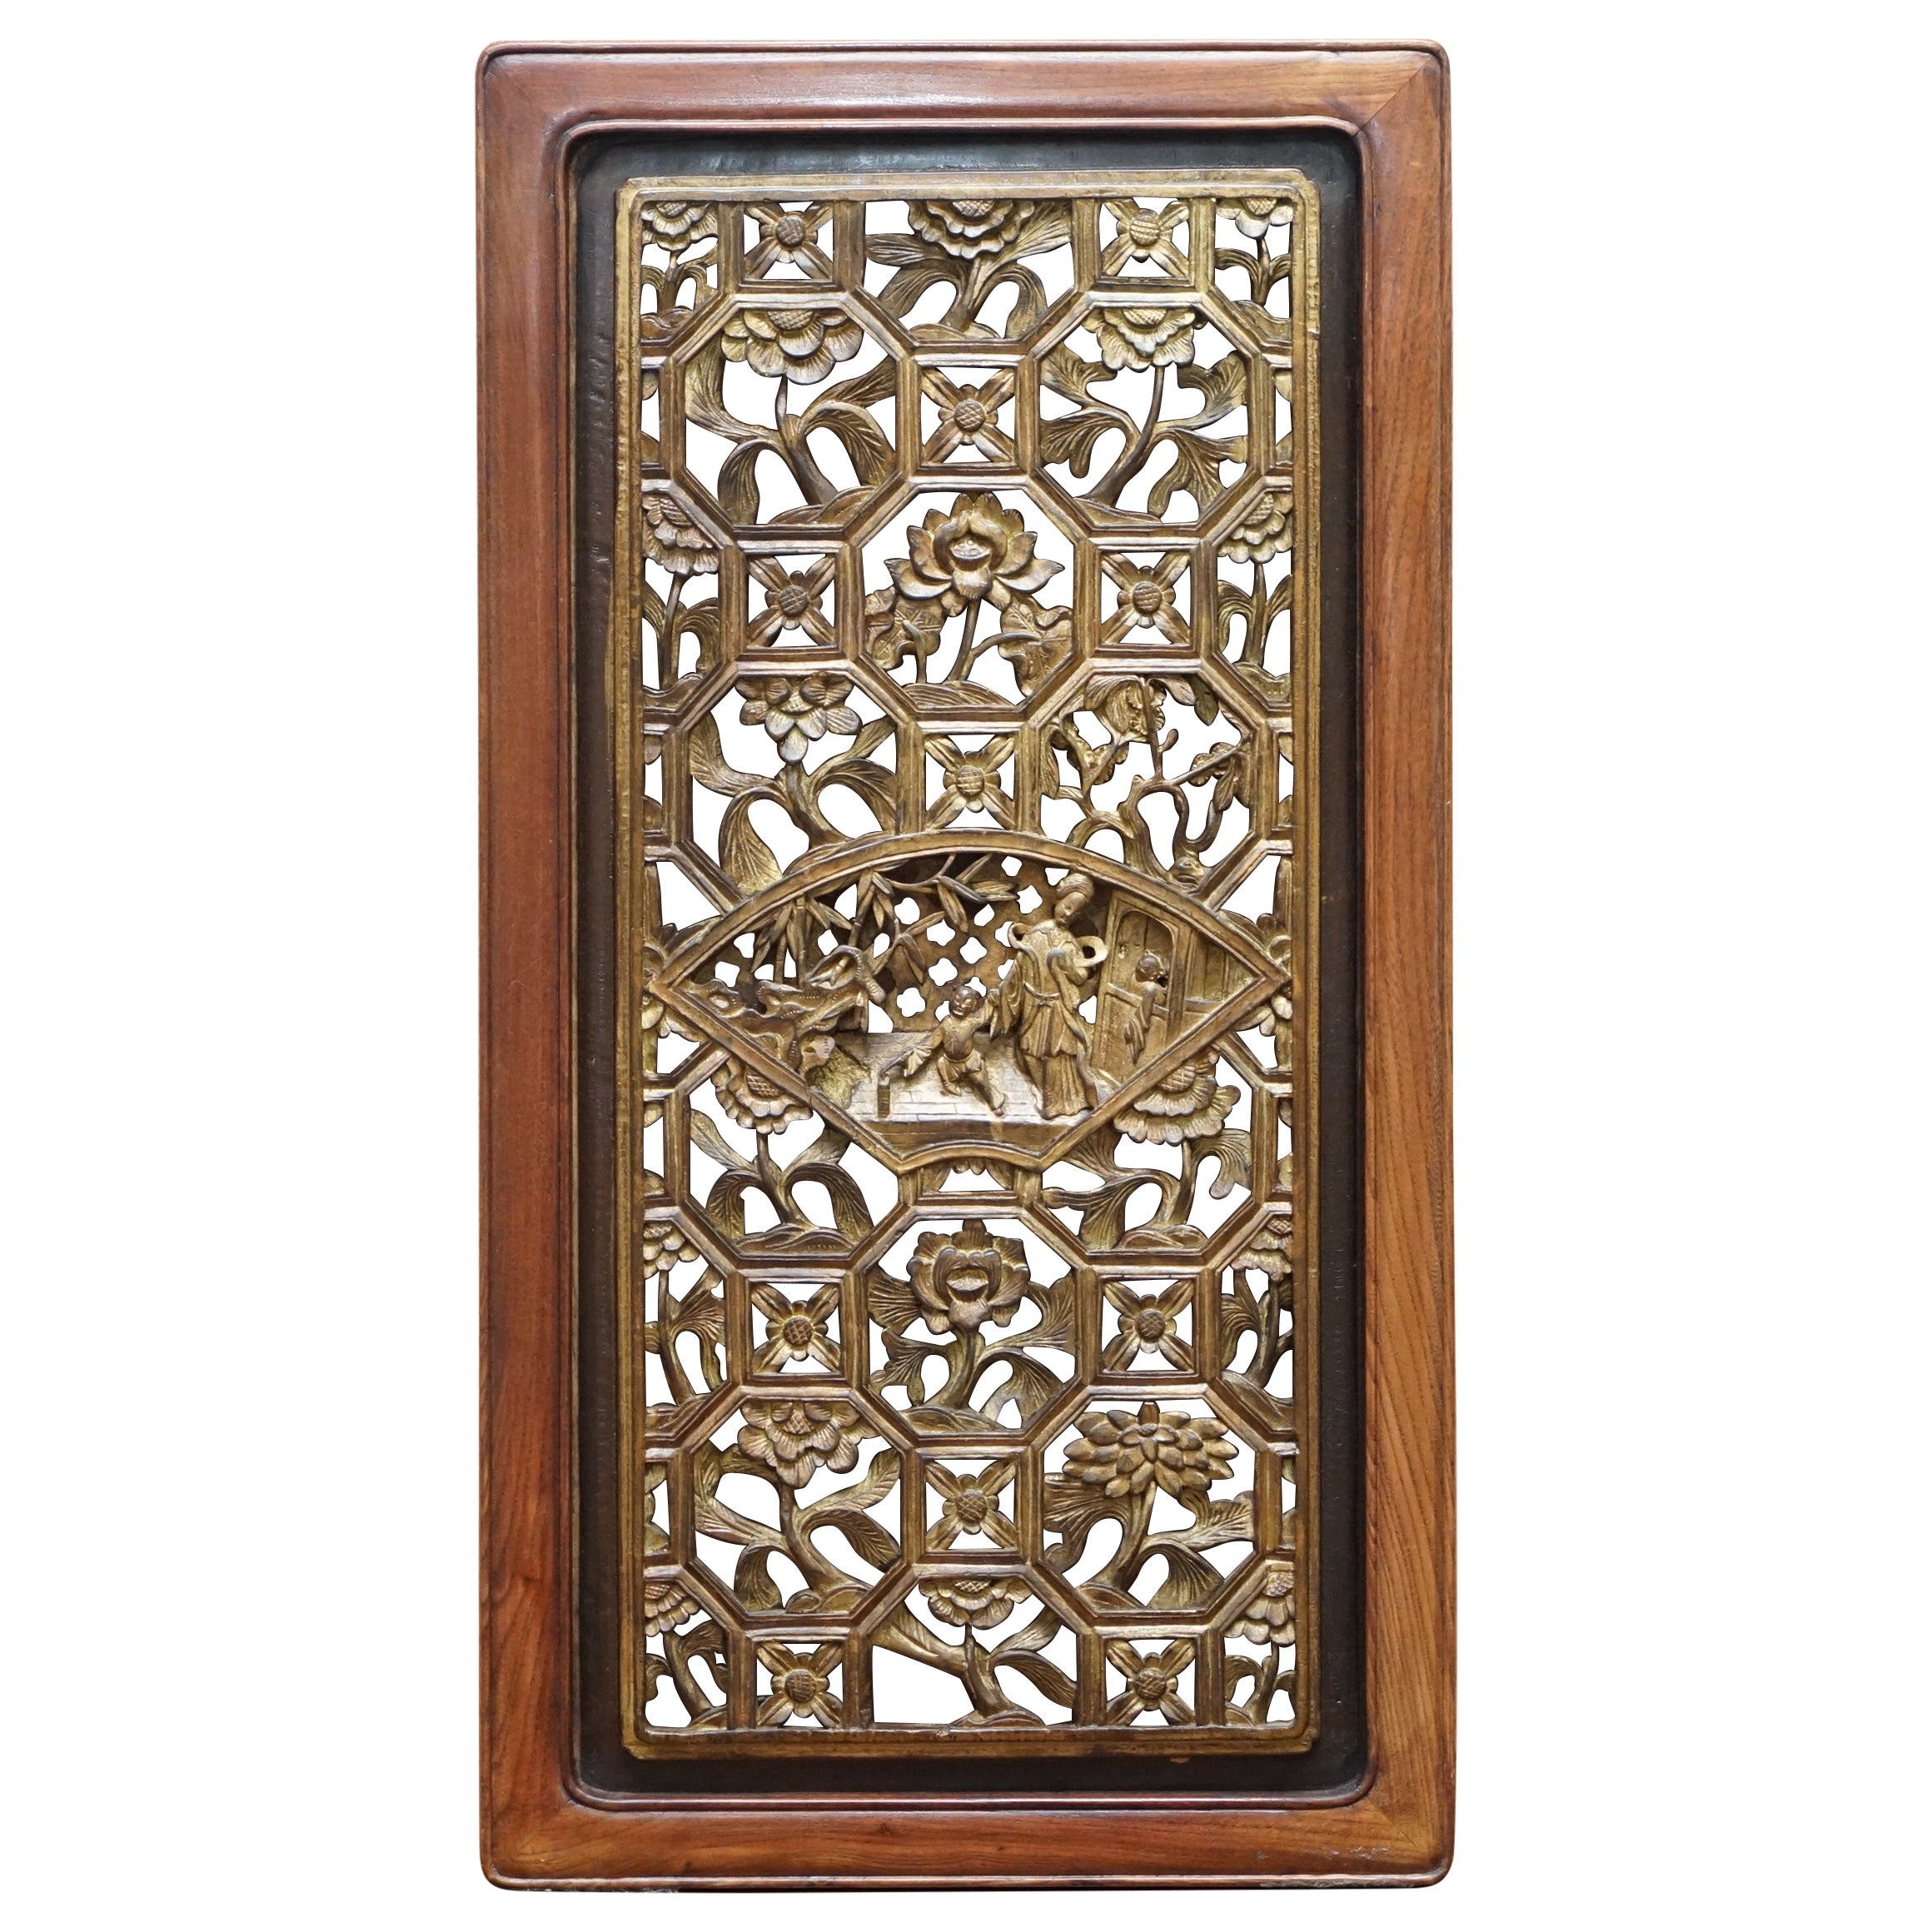 Chinese Export circa 1900 Gold Leaf Painted Fret Work Carved Wall Panel in Teak